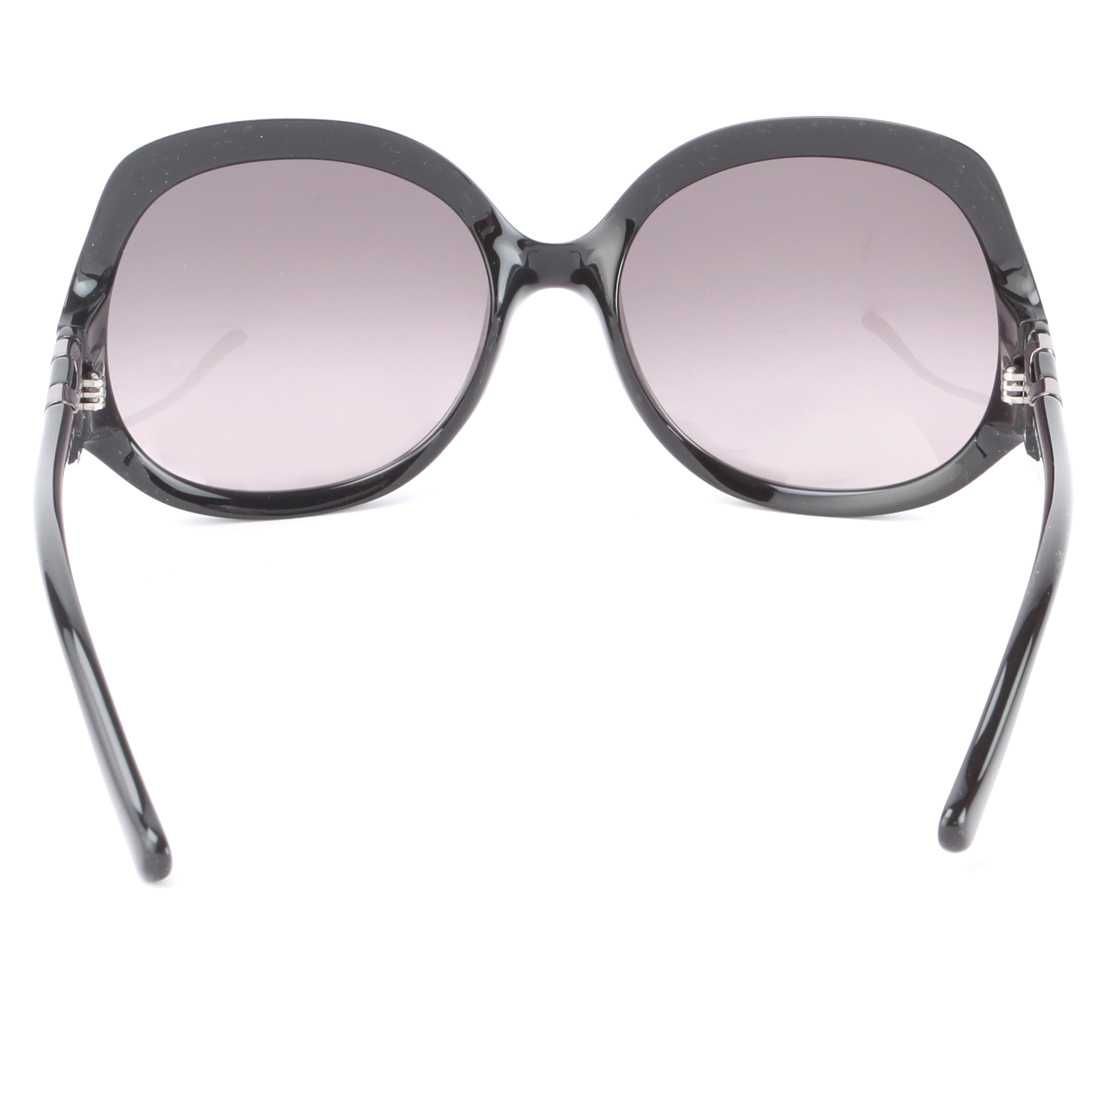 fendi cat eye sunglasses sale  fendi black fs-5143